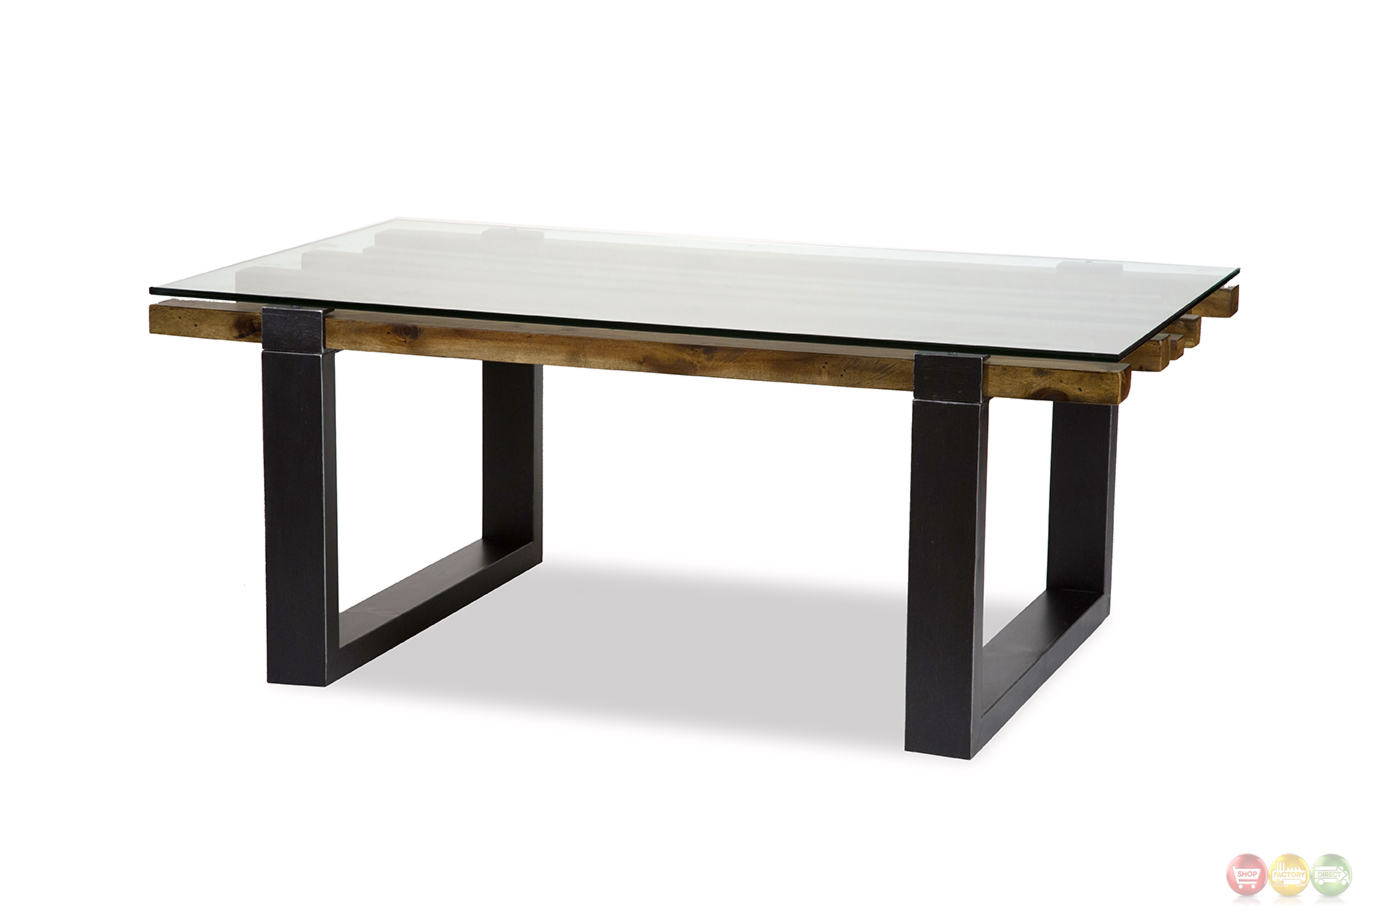 Modern Glass And Wood Coffee Table : ... Rustic Modern Mahogany Coffee Table w/ Stylish Wood & Glass Top